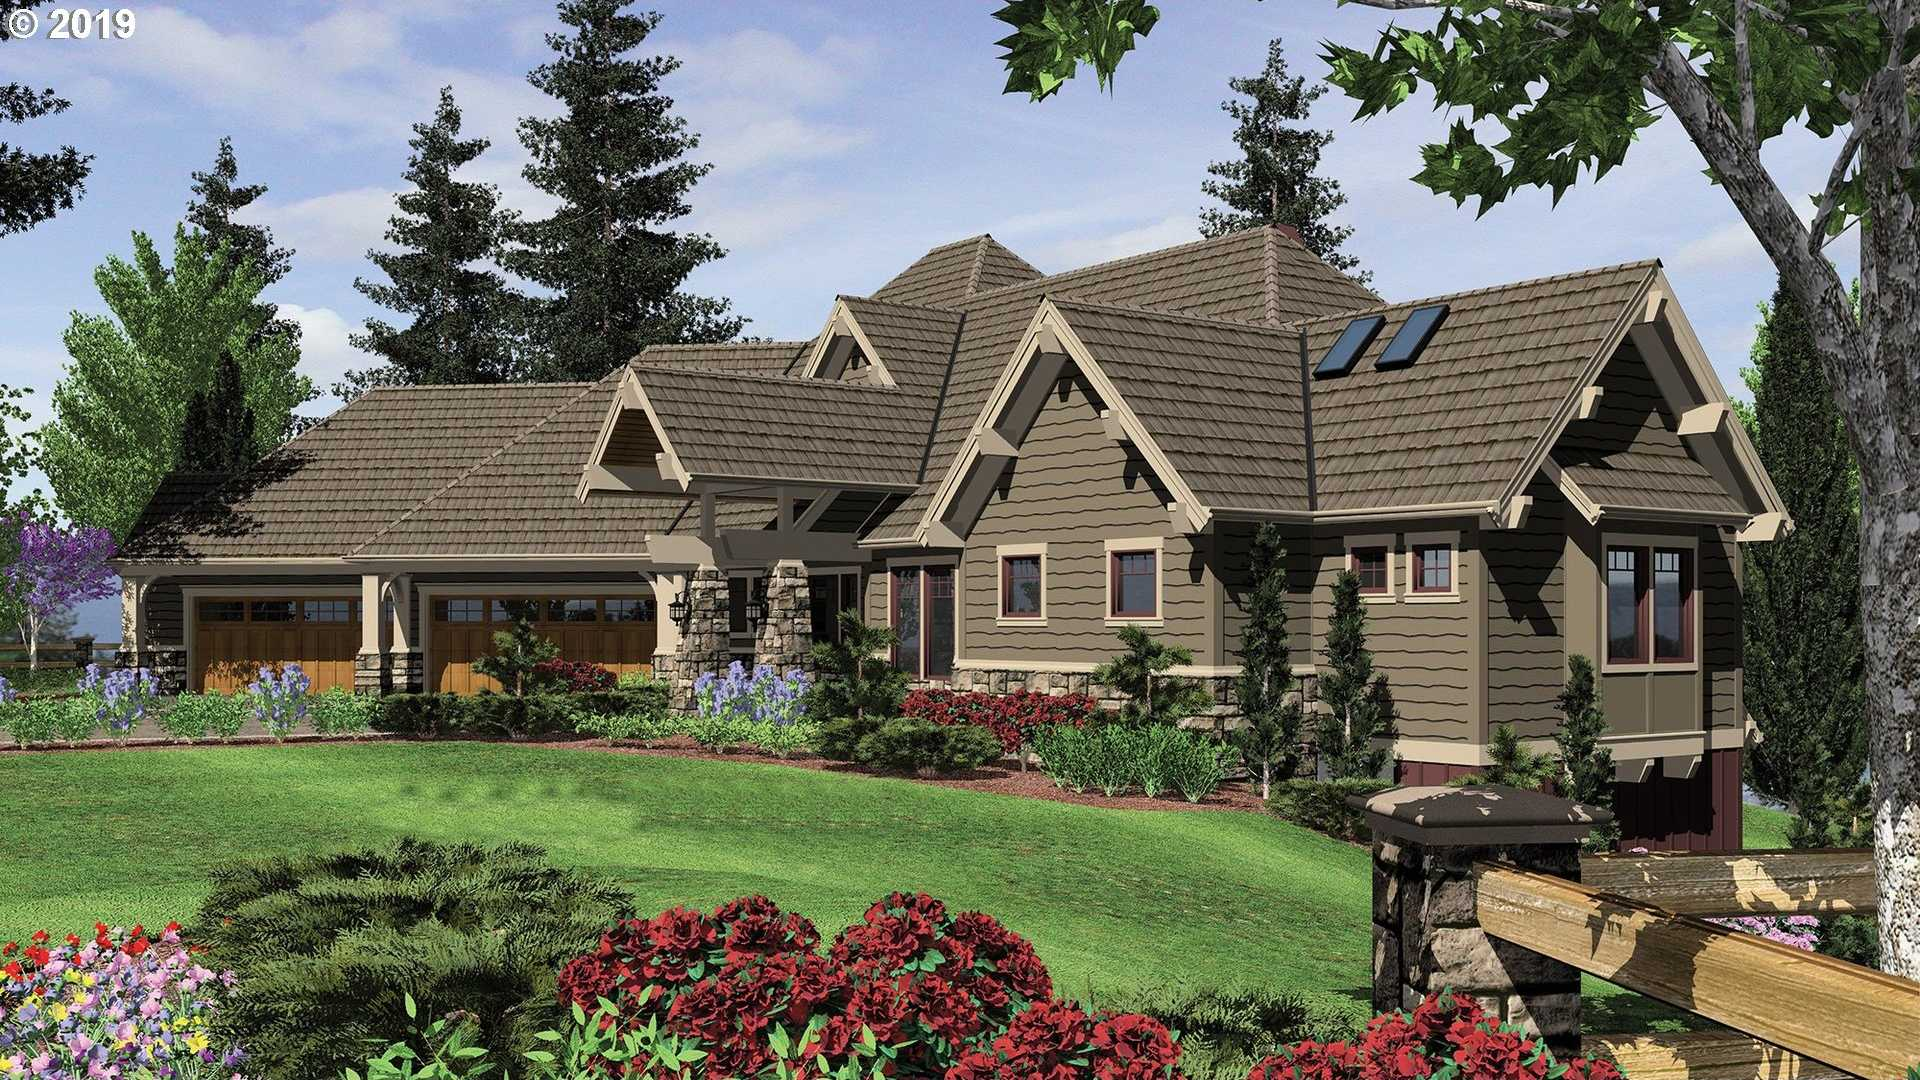 $1,295,000 - 4Br/4Ba -  for Sale in West Linn